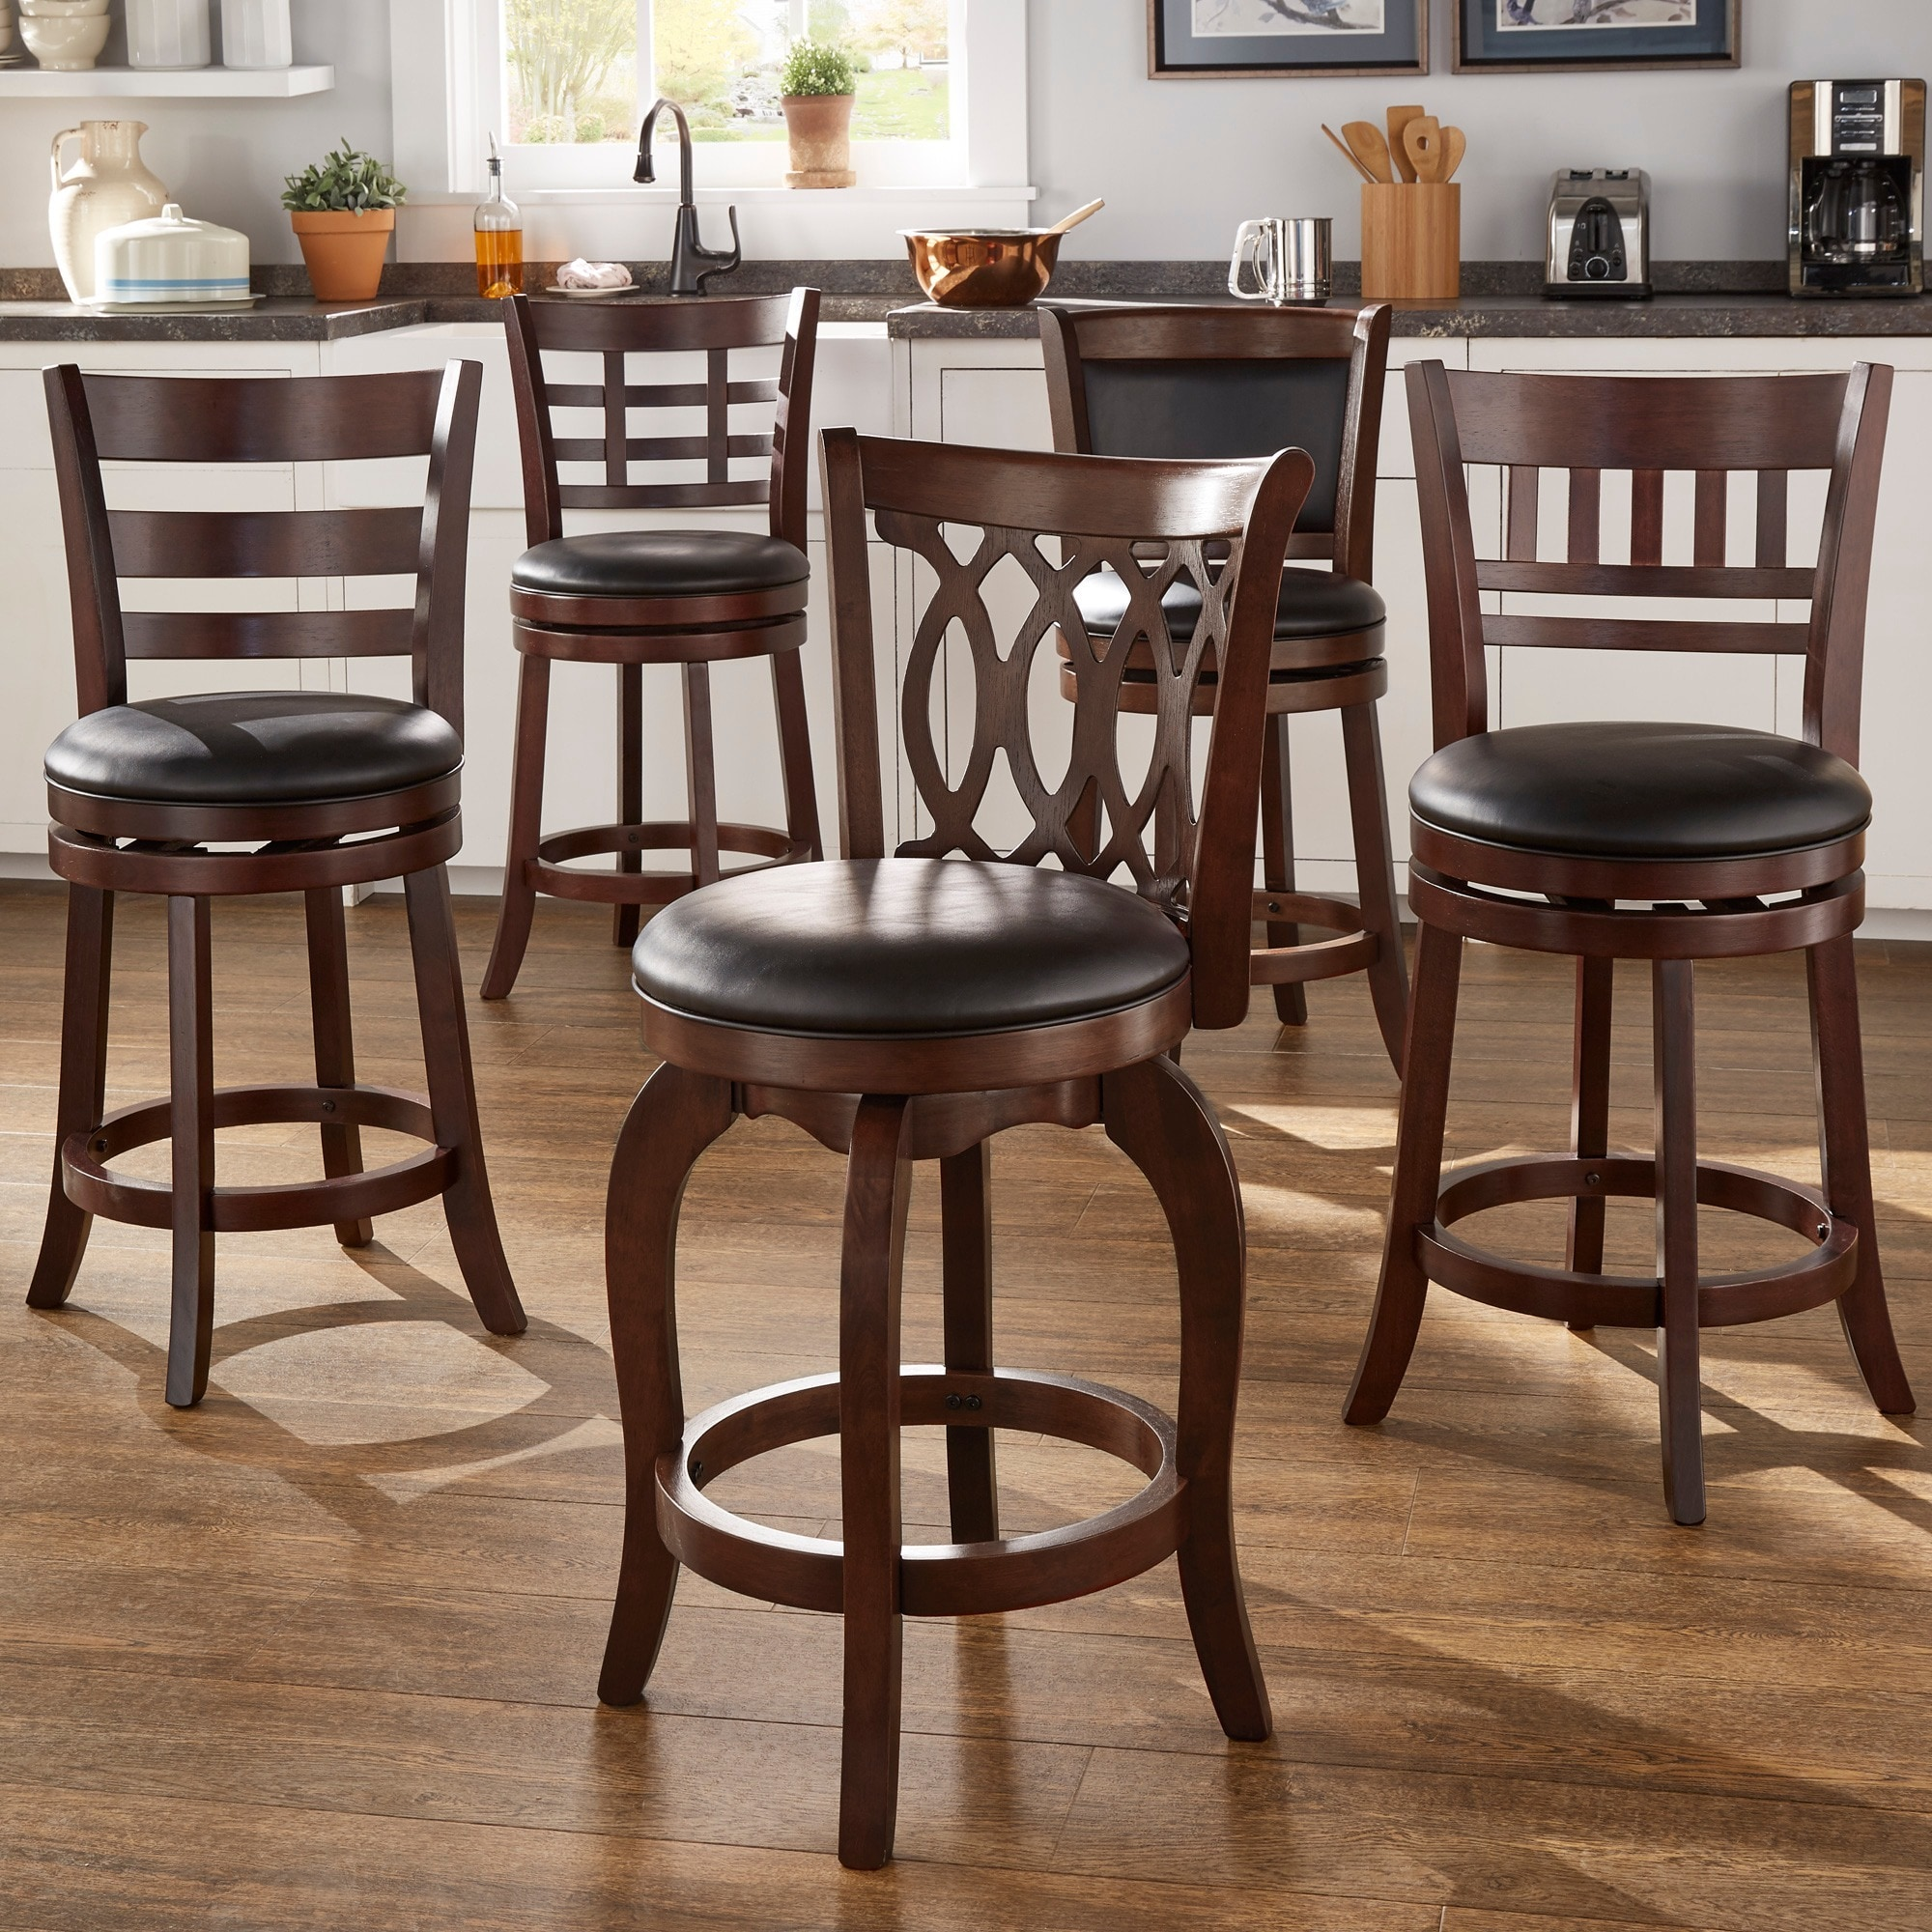 Awe Inspiring Verona Cherry Swivel 24 Inch High Back Counter Height Stool By Inspire Q Classic Dailytribune Chair Design For Home Dailytribuneorg